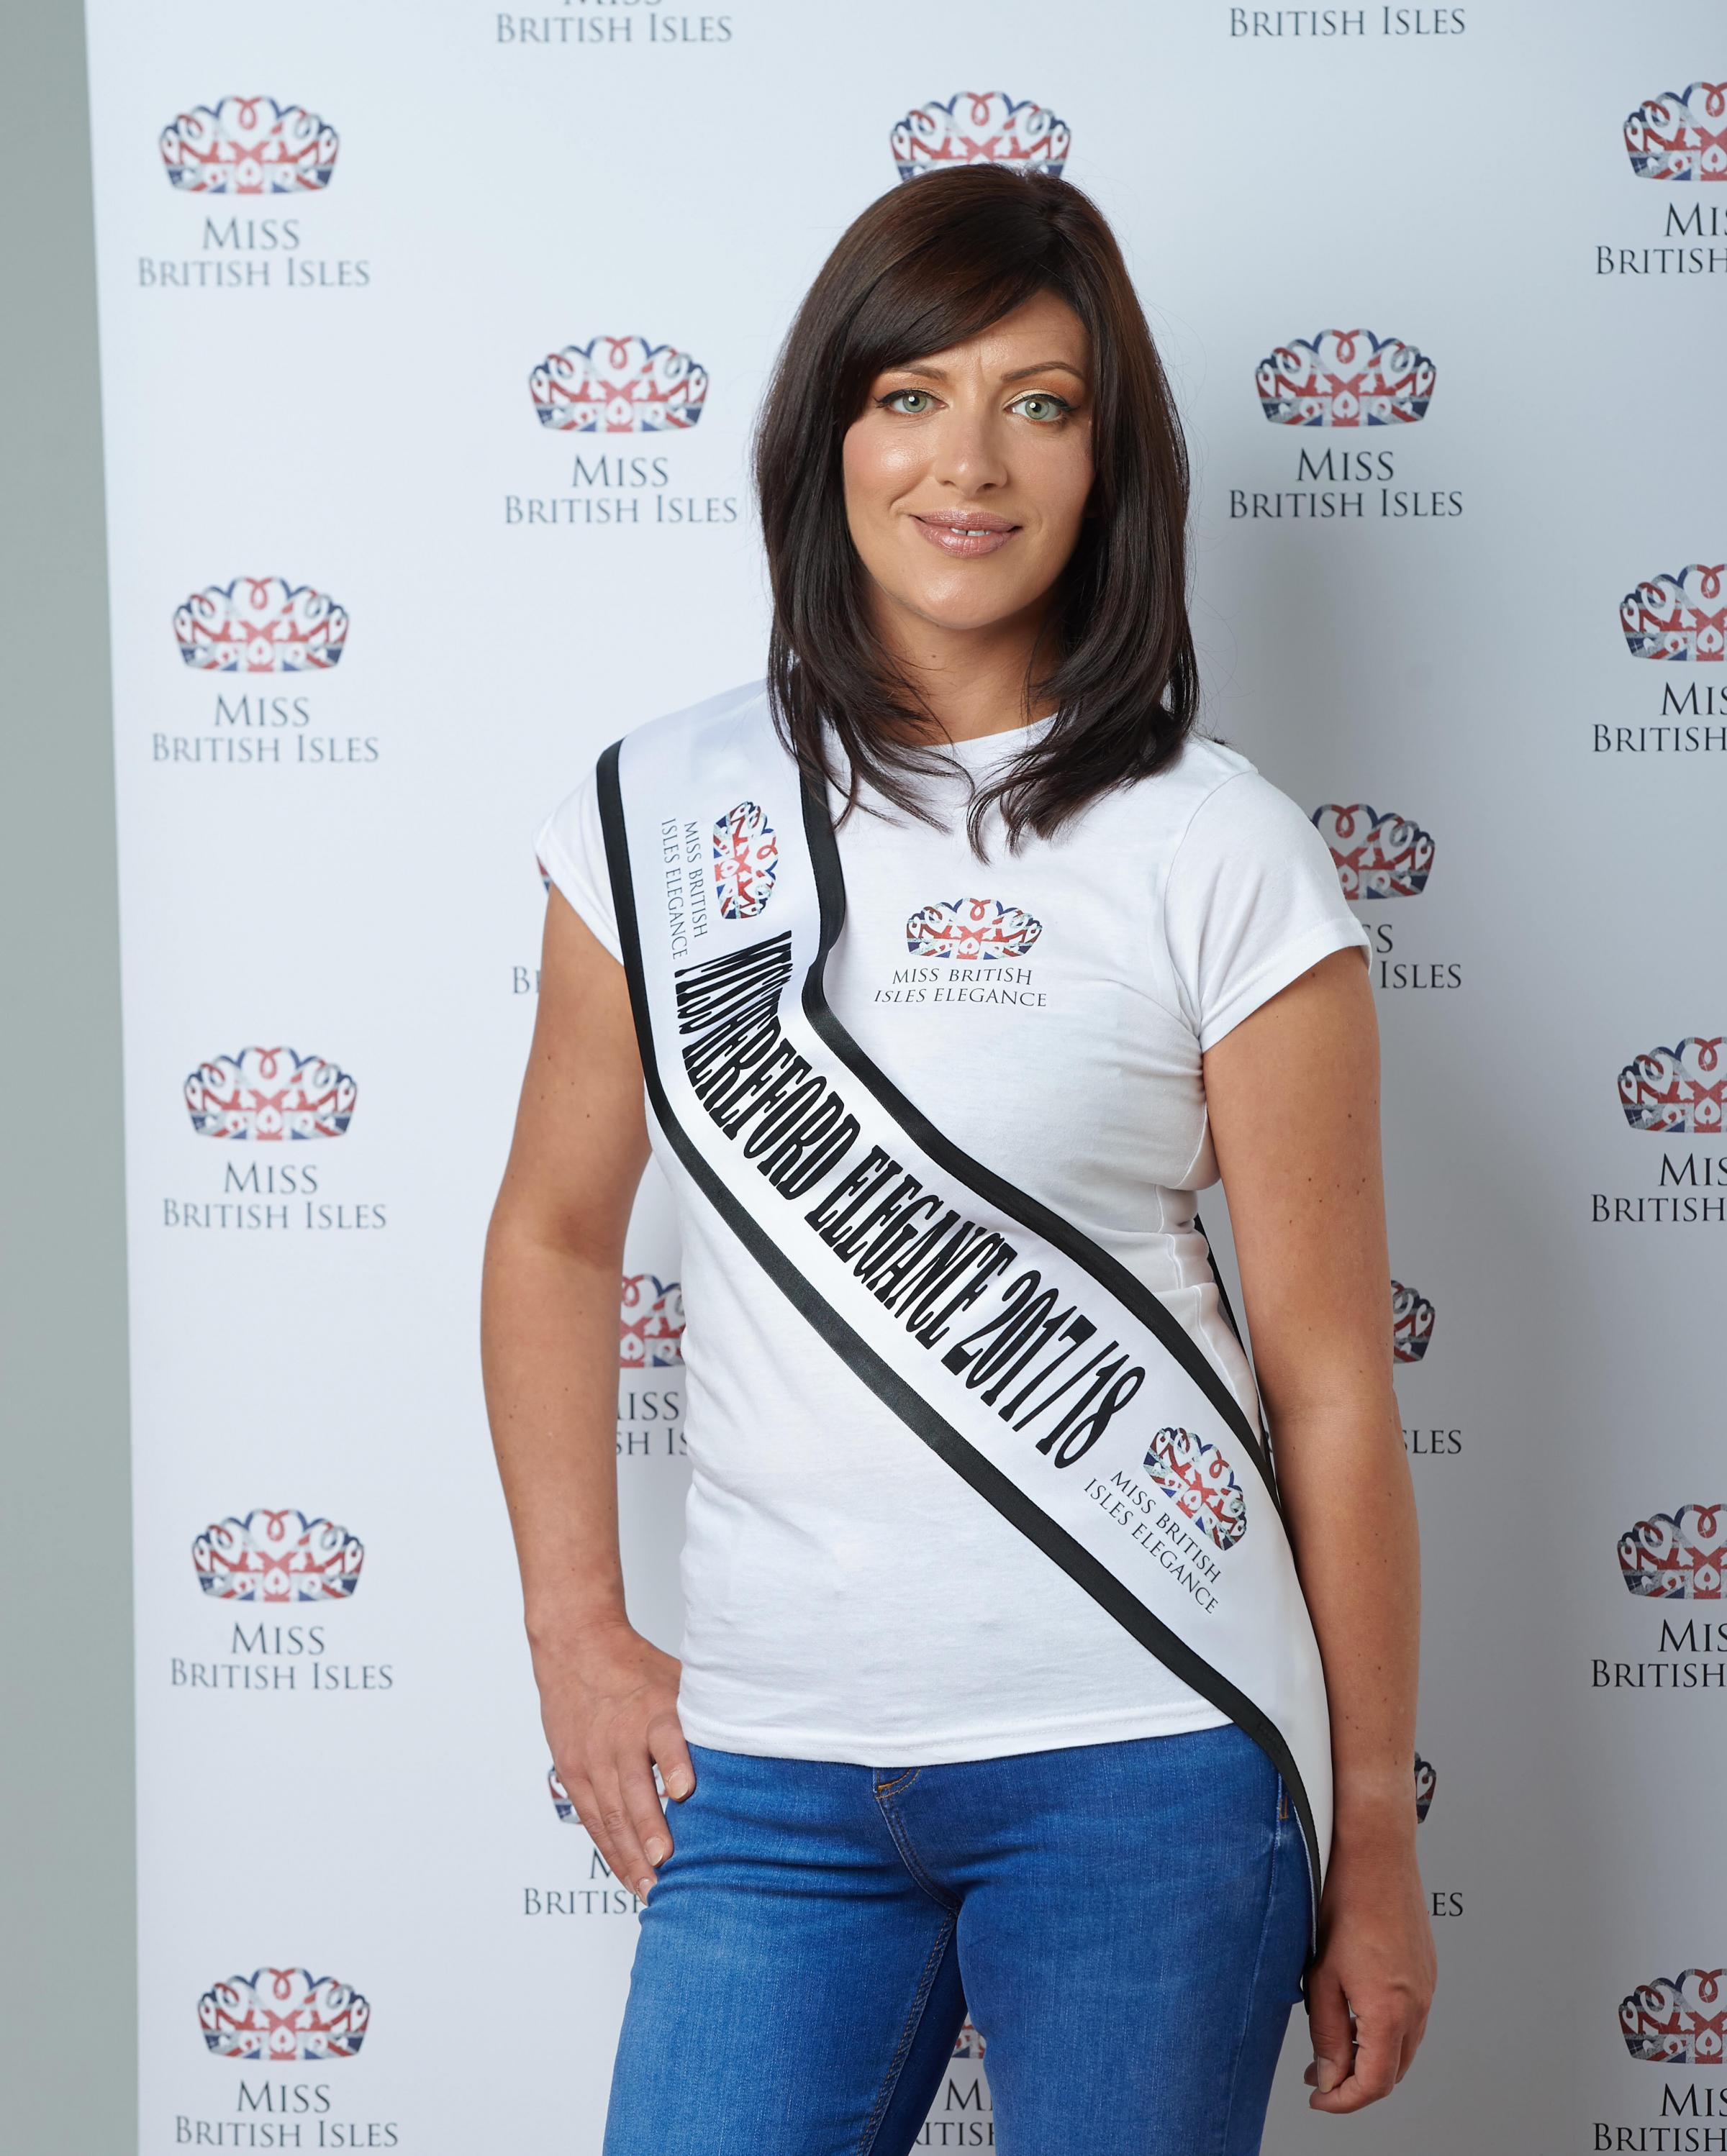 Hereford's Kate Paterson will compete in the national final of Miss British Isles Elegance 2018